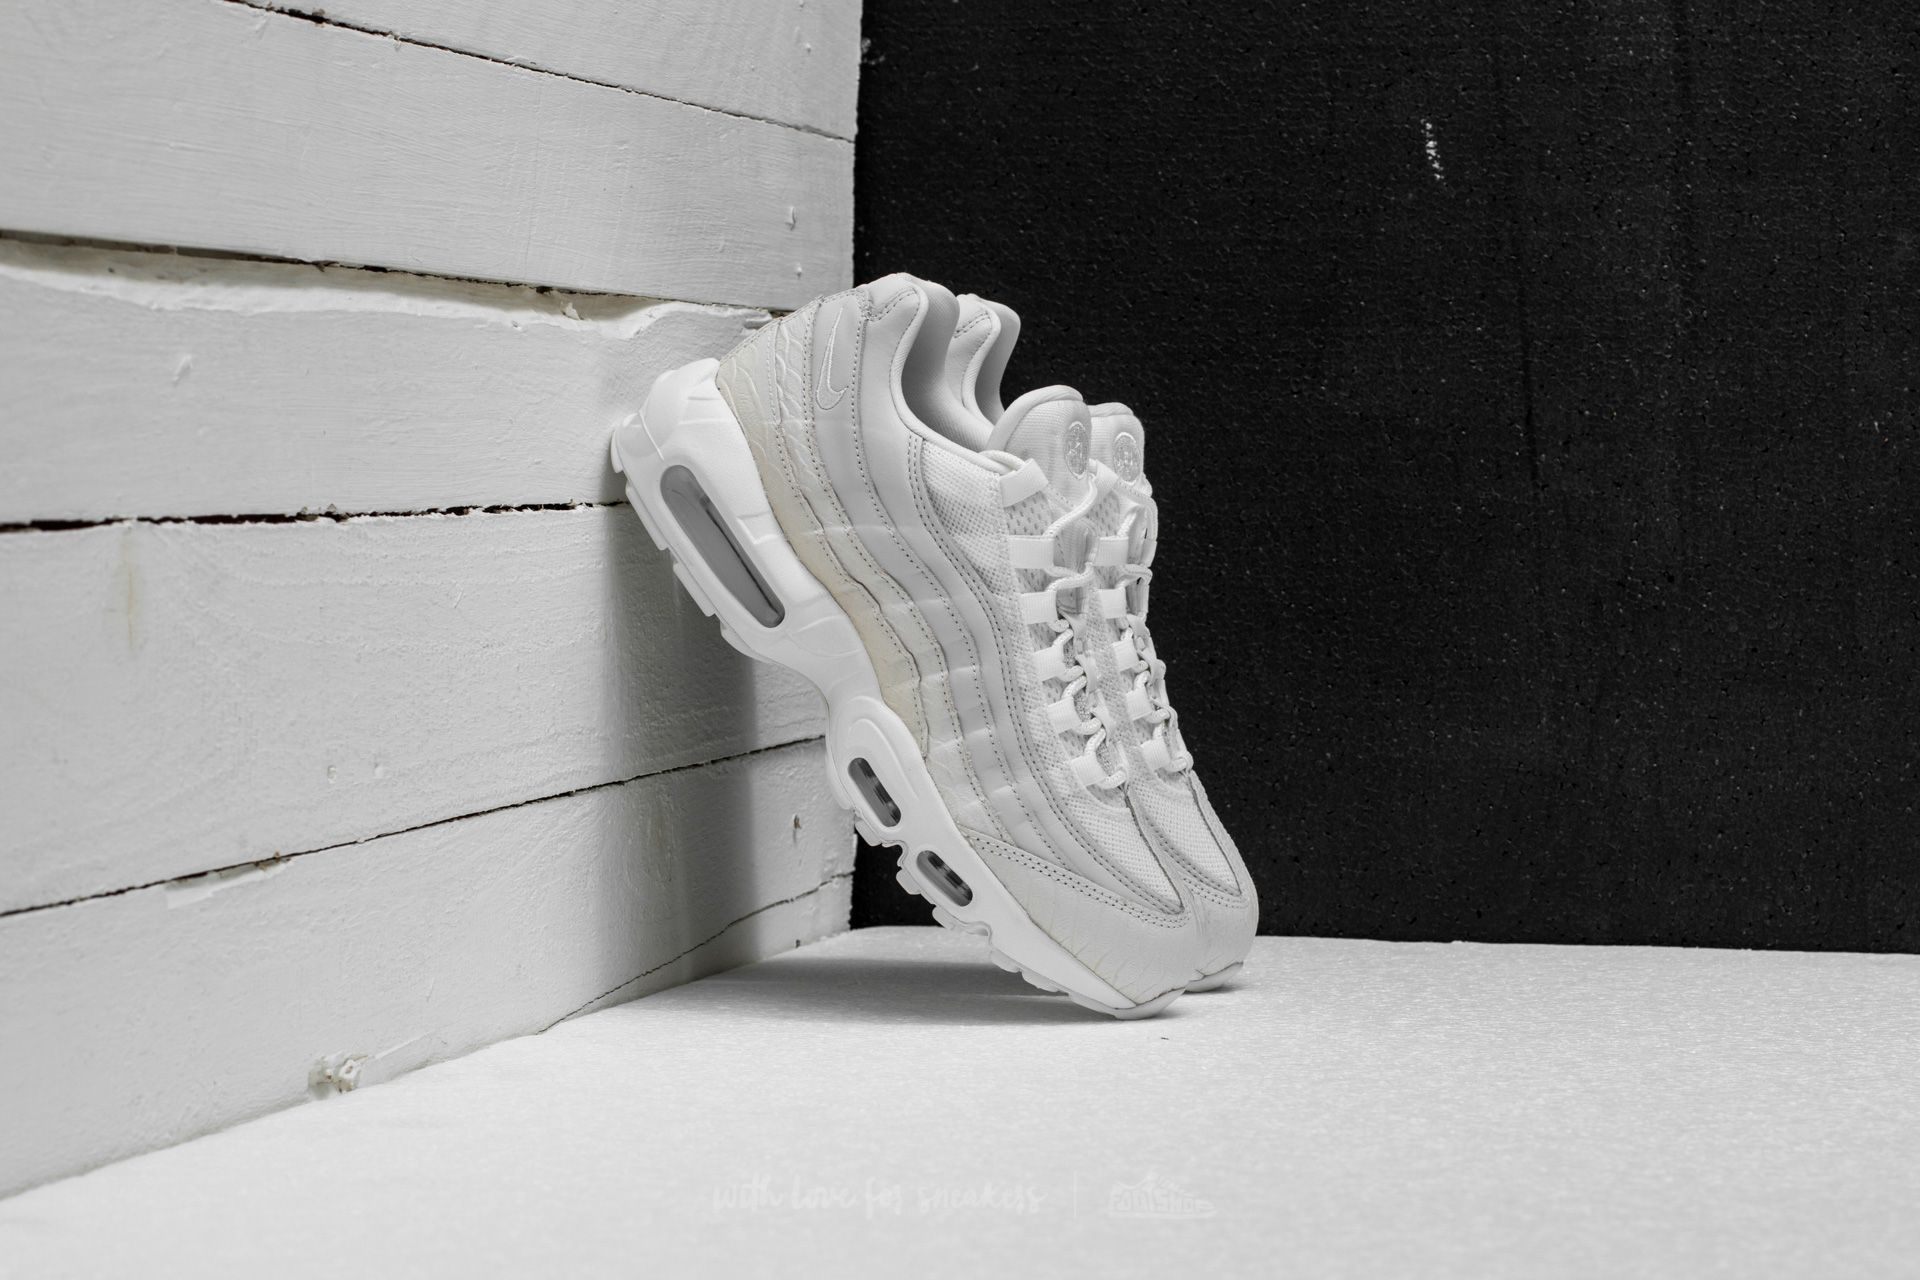 wholesale dealer aec7c 10148 Nike Air Max 95 Premium. Summit White  Summit White